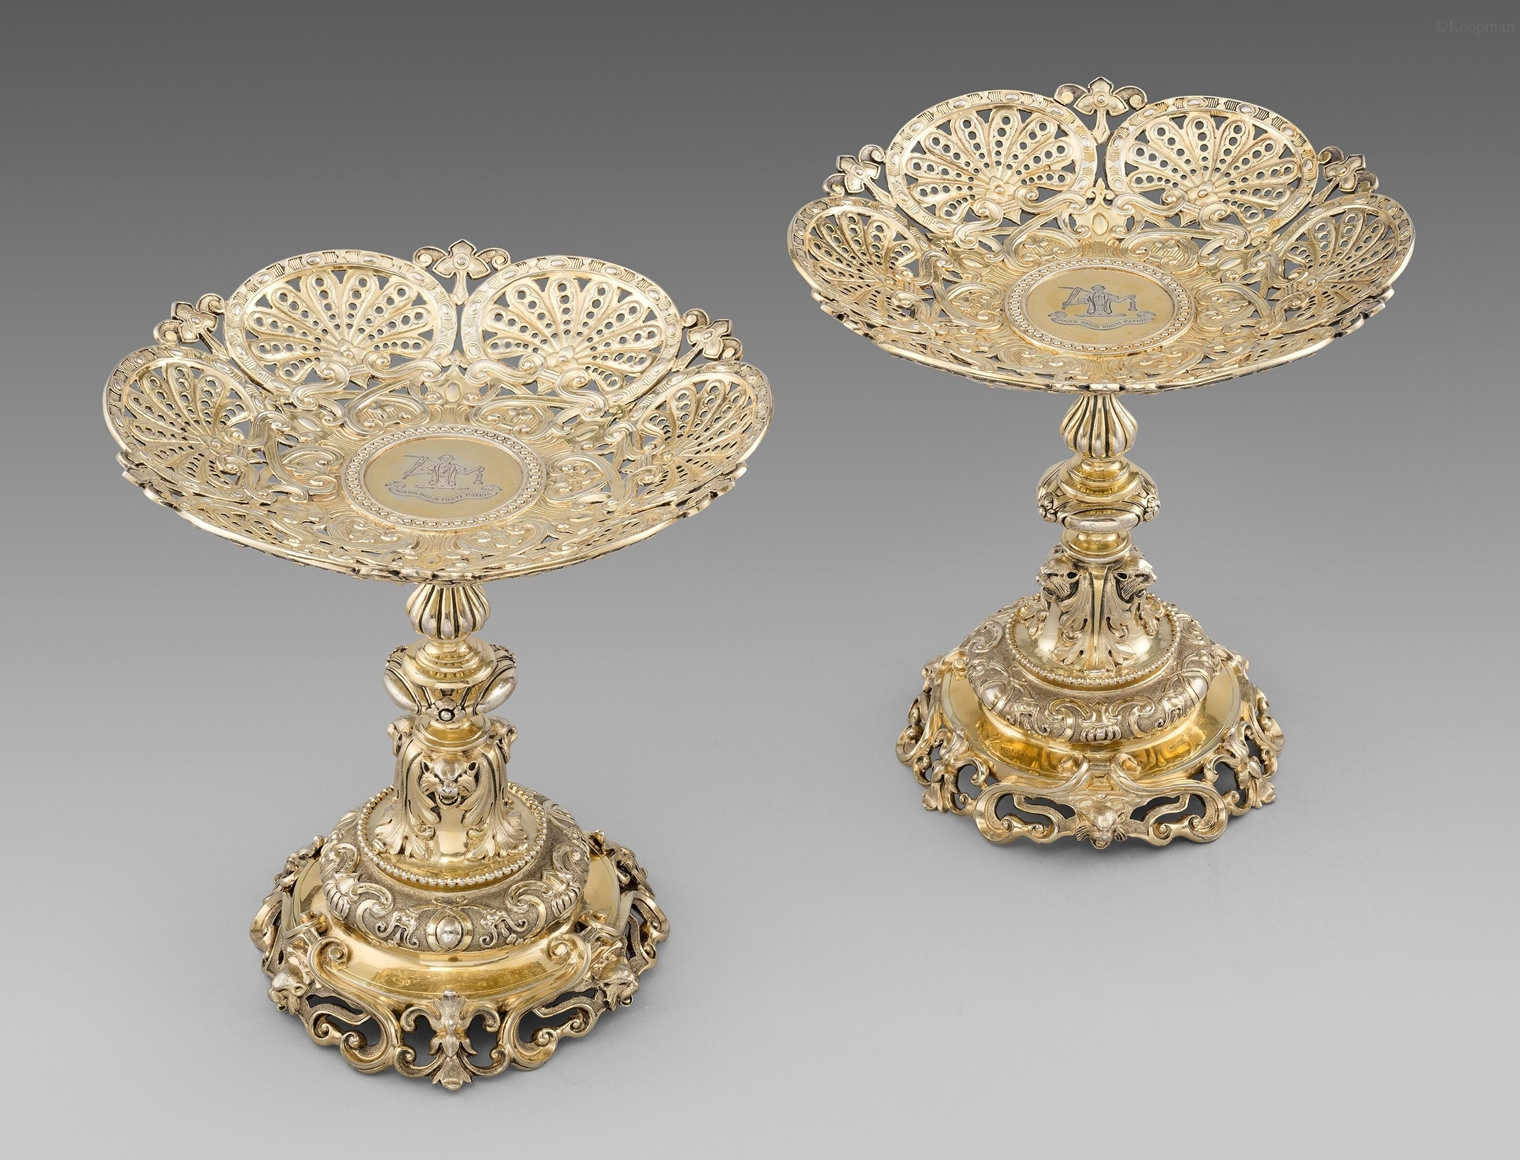 A Pair of Silver-Gilt Comports